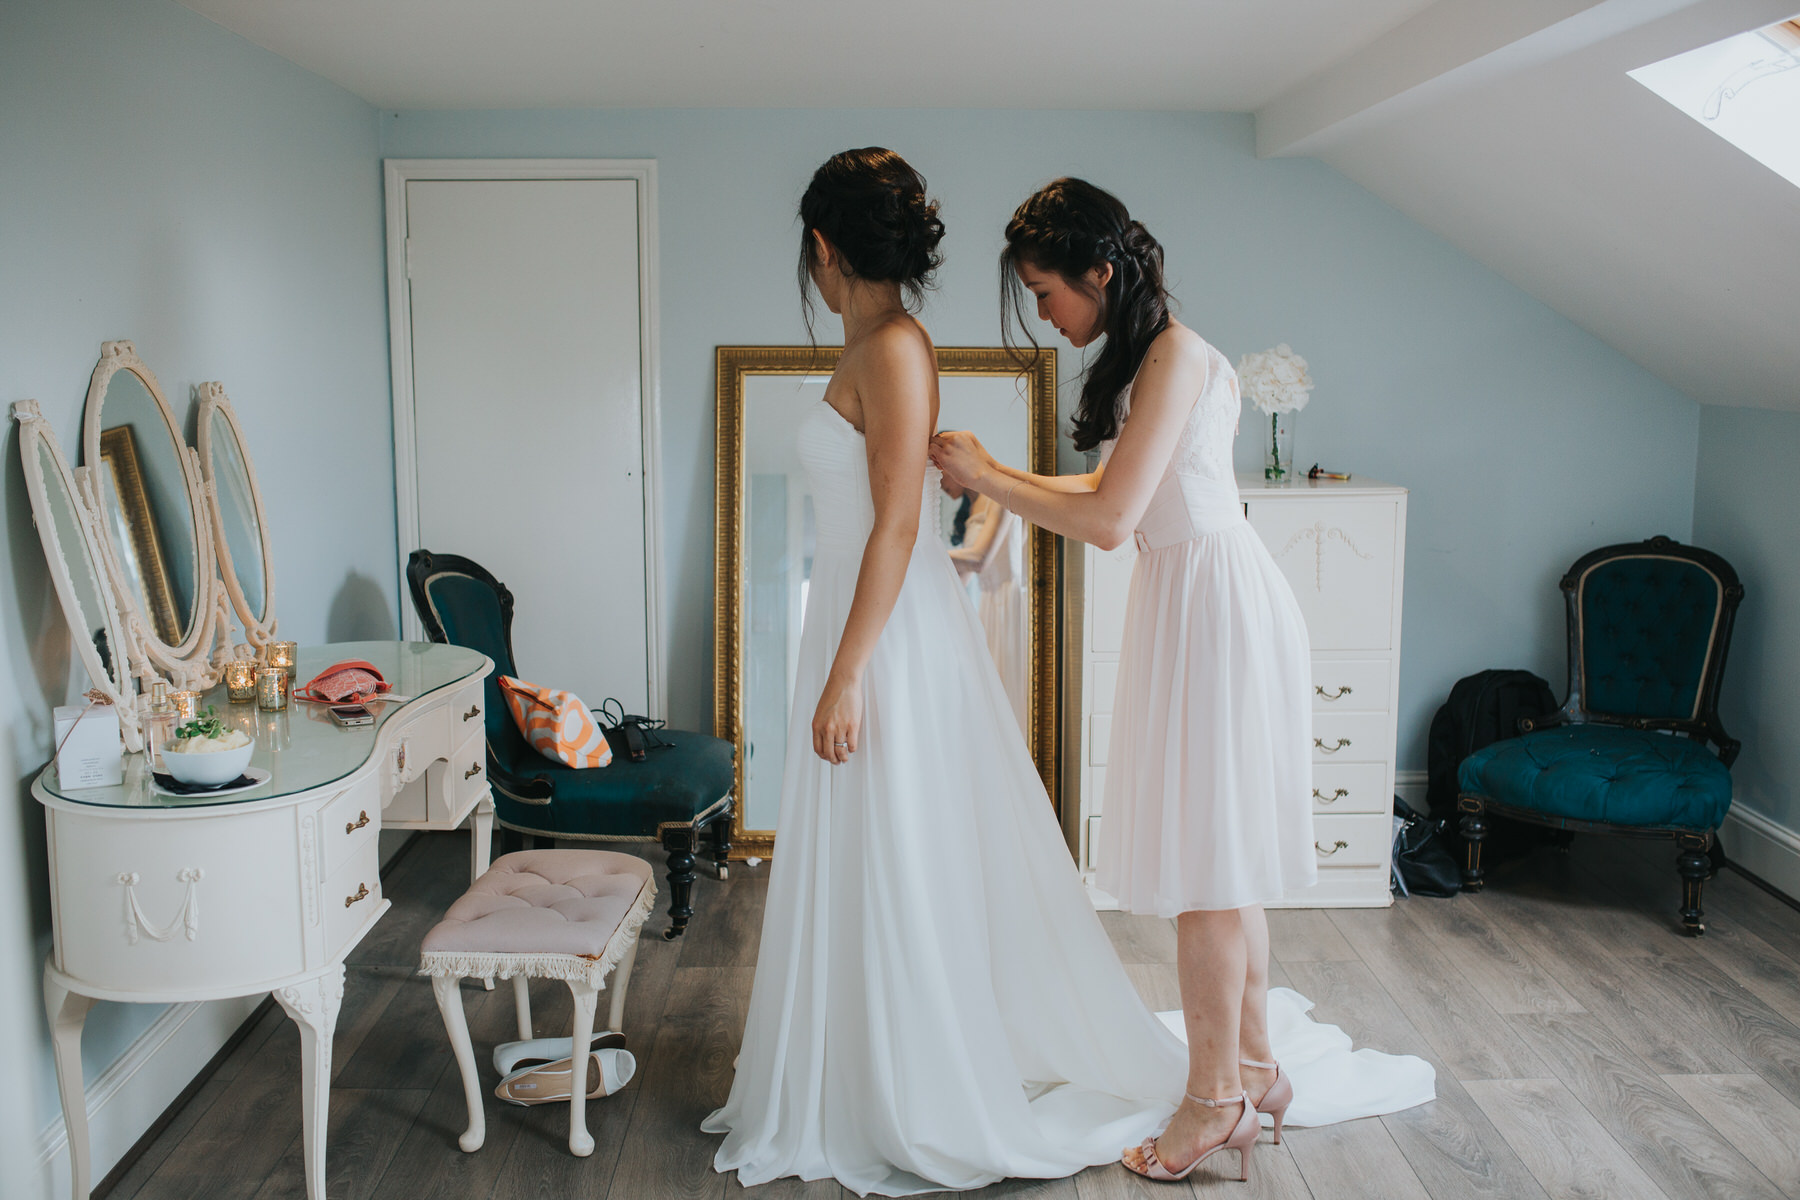 Belair House wedding bride putting on dress.jpg